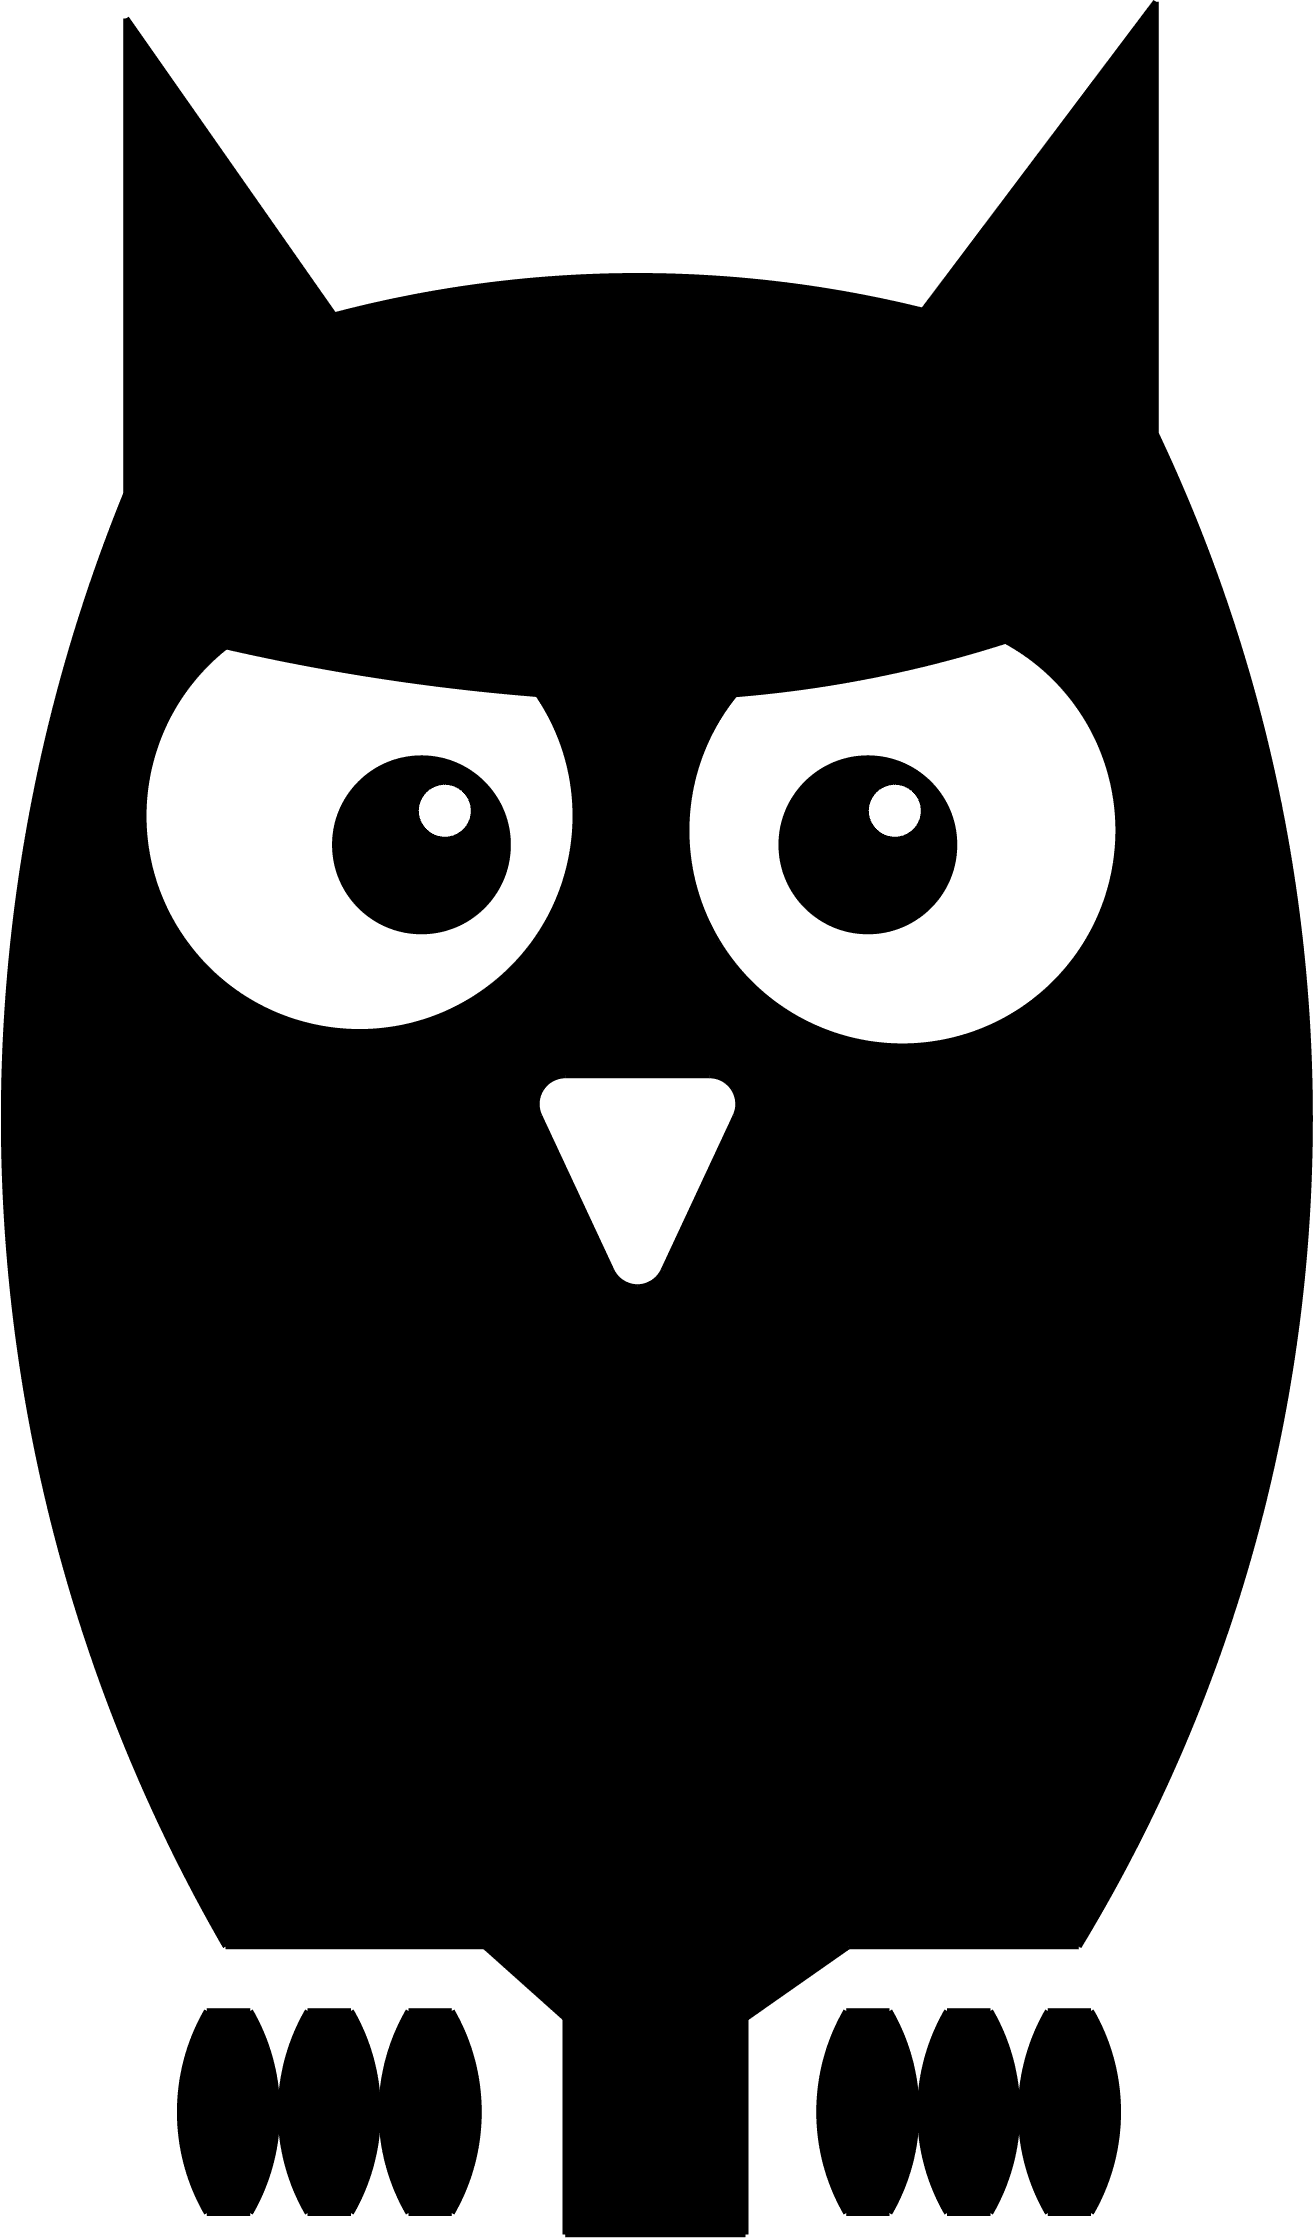 Owl-logo-for-website-no-frame-or-name